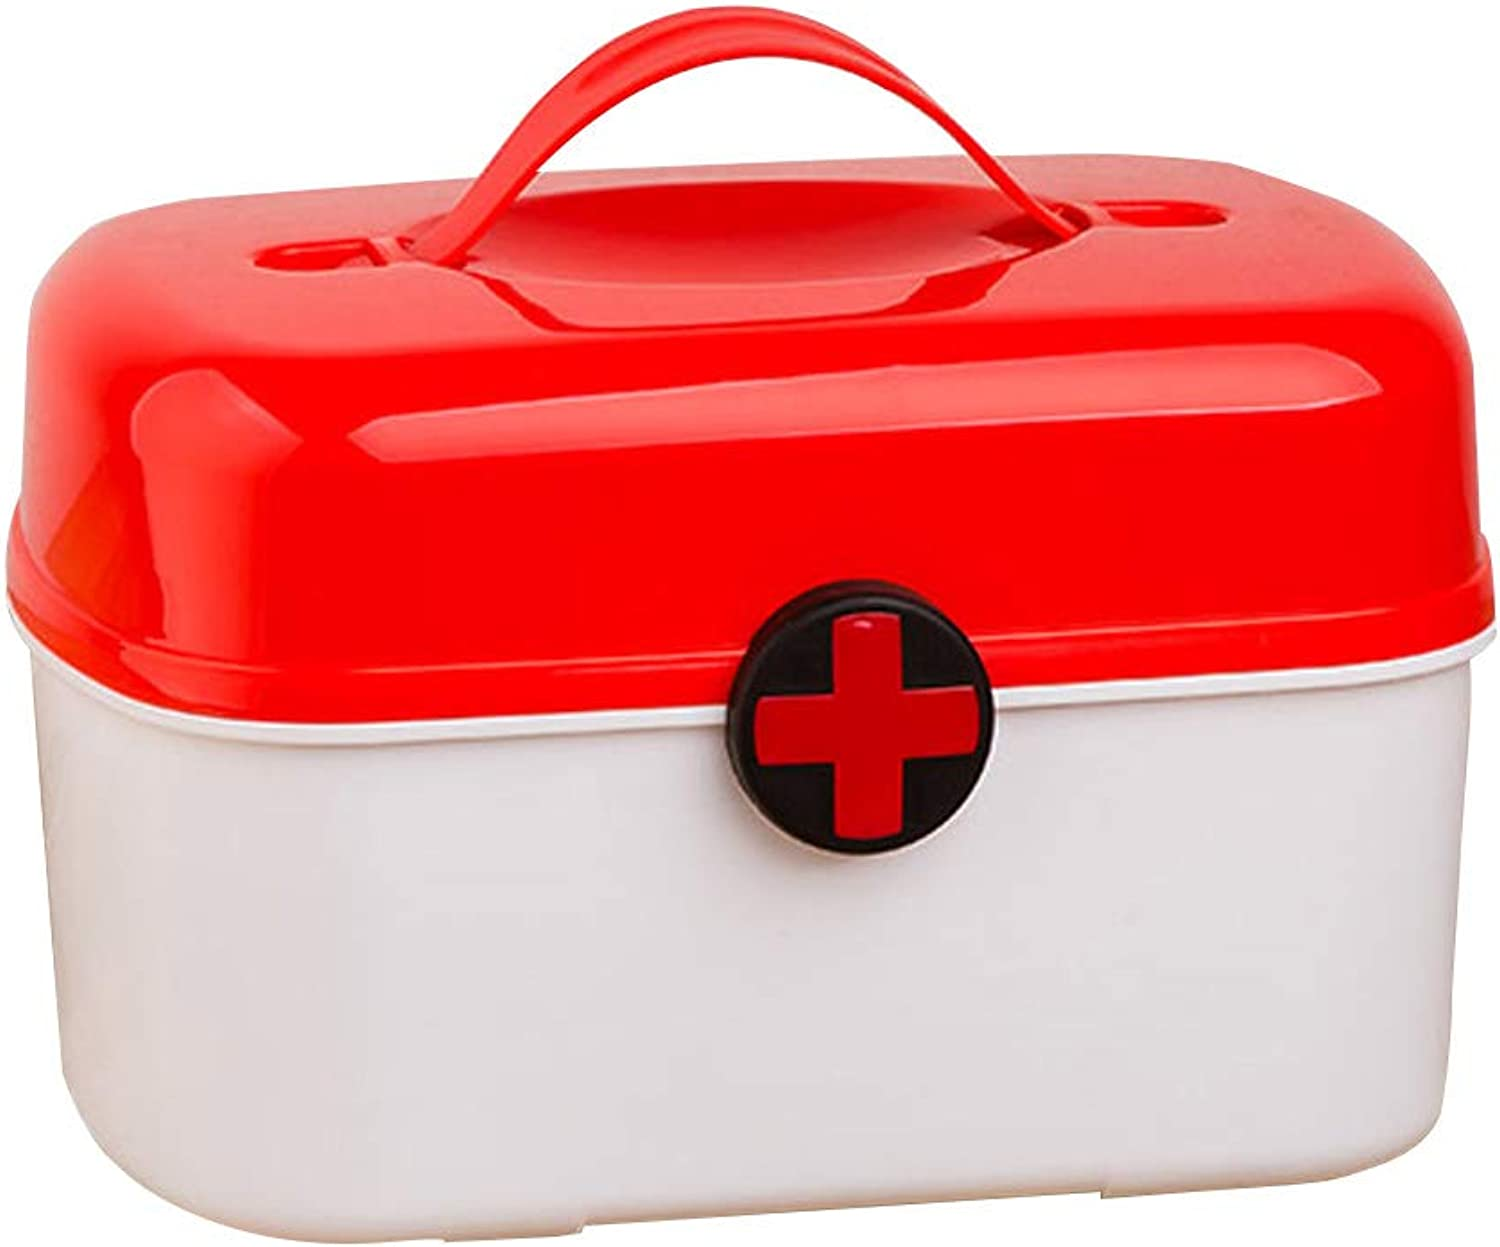 YD Medical box-PP plastic material, portable portable moisture-proof dust double-layer large capacity home cute wind, household multi-layer cute medicine box medical outpatient medical box medicine st